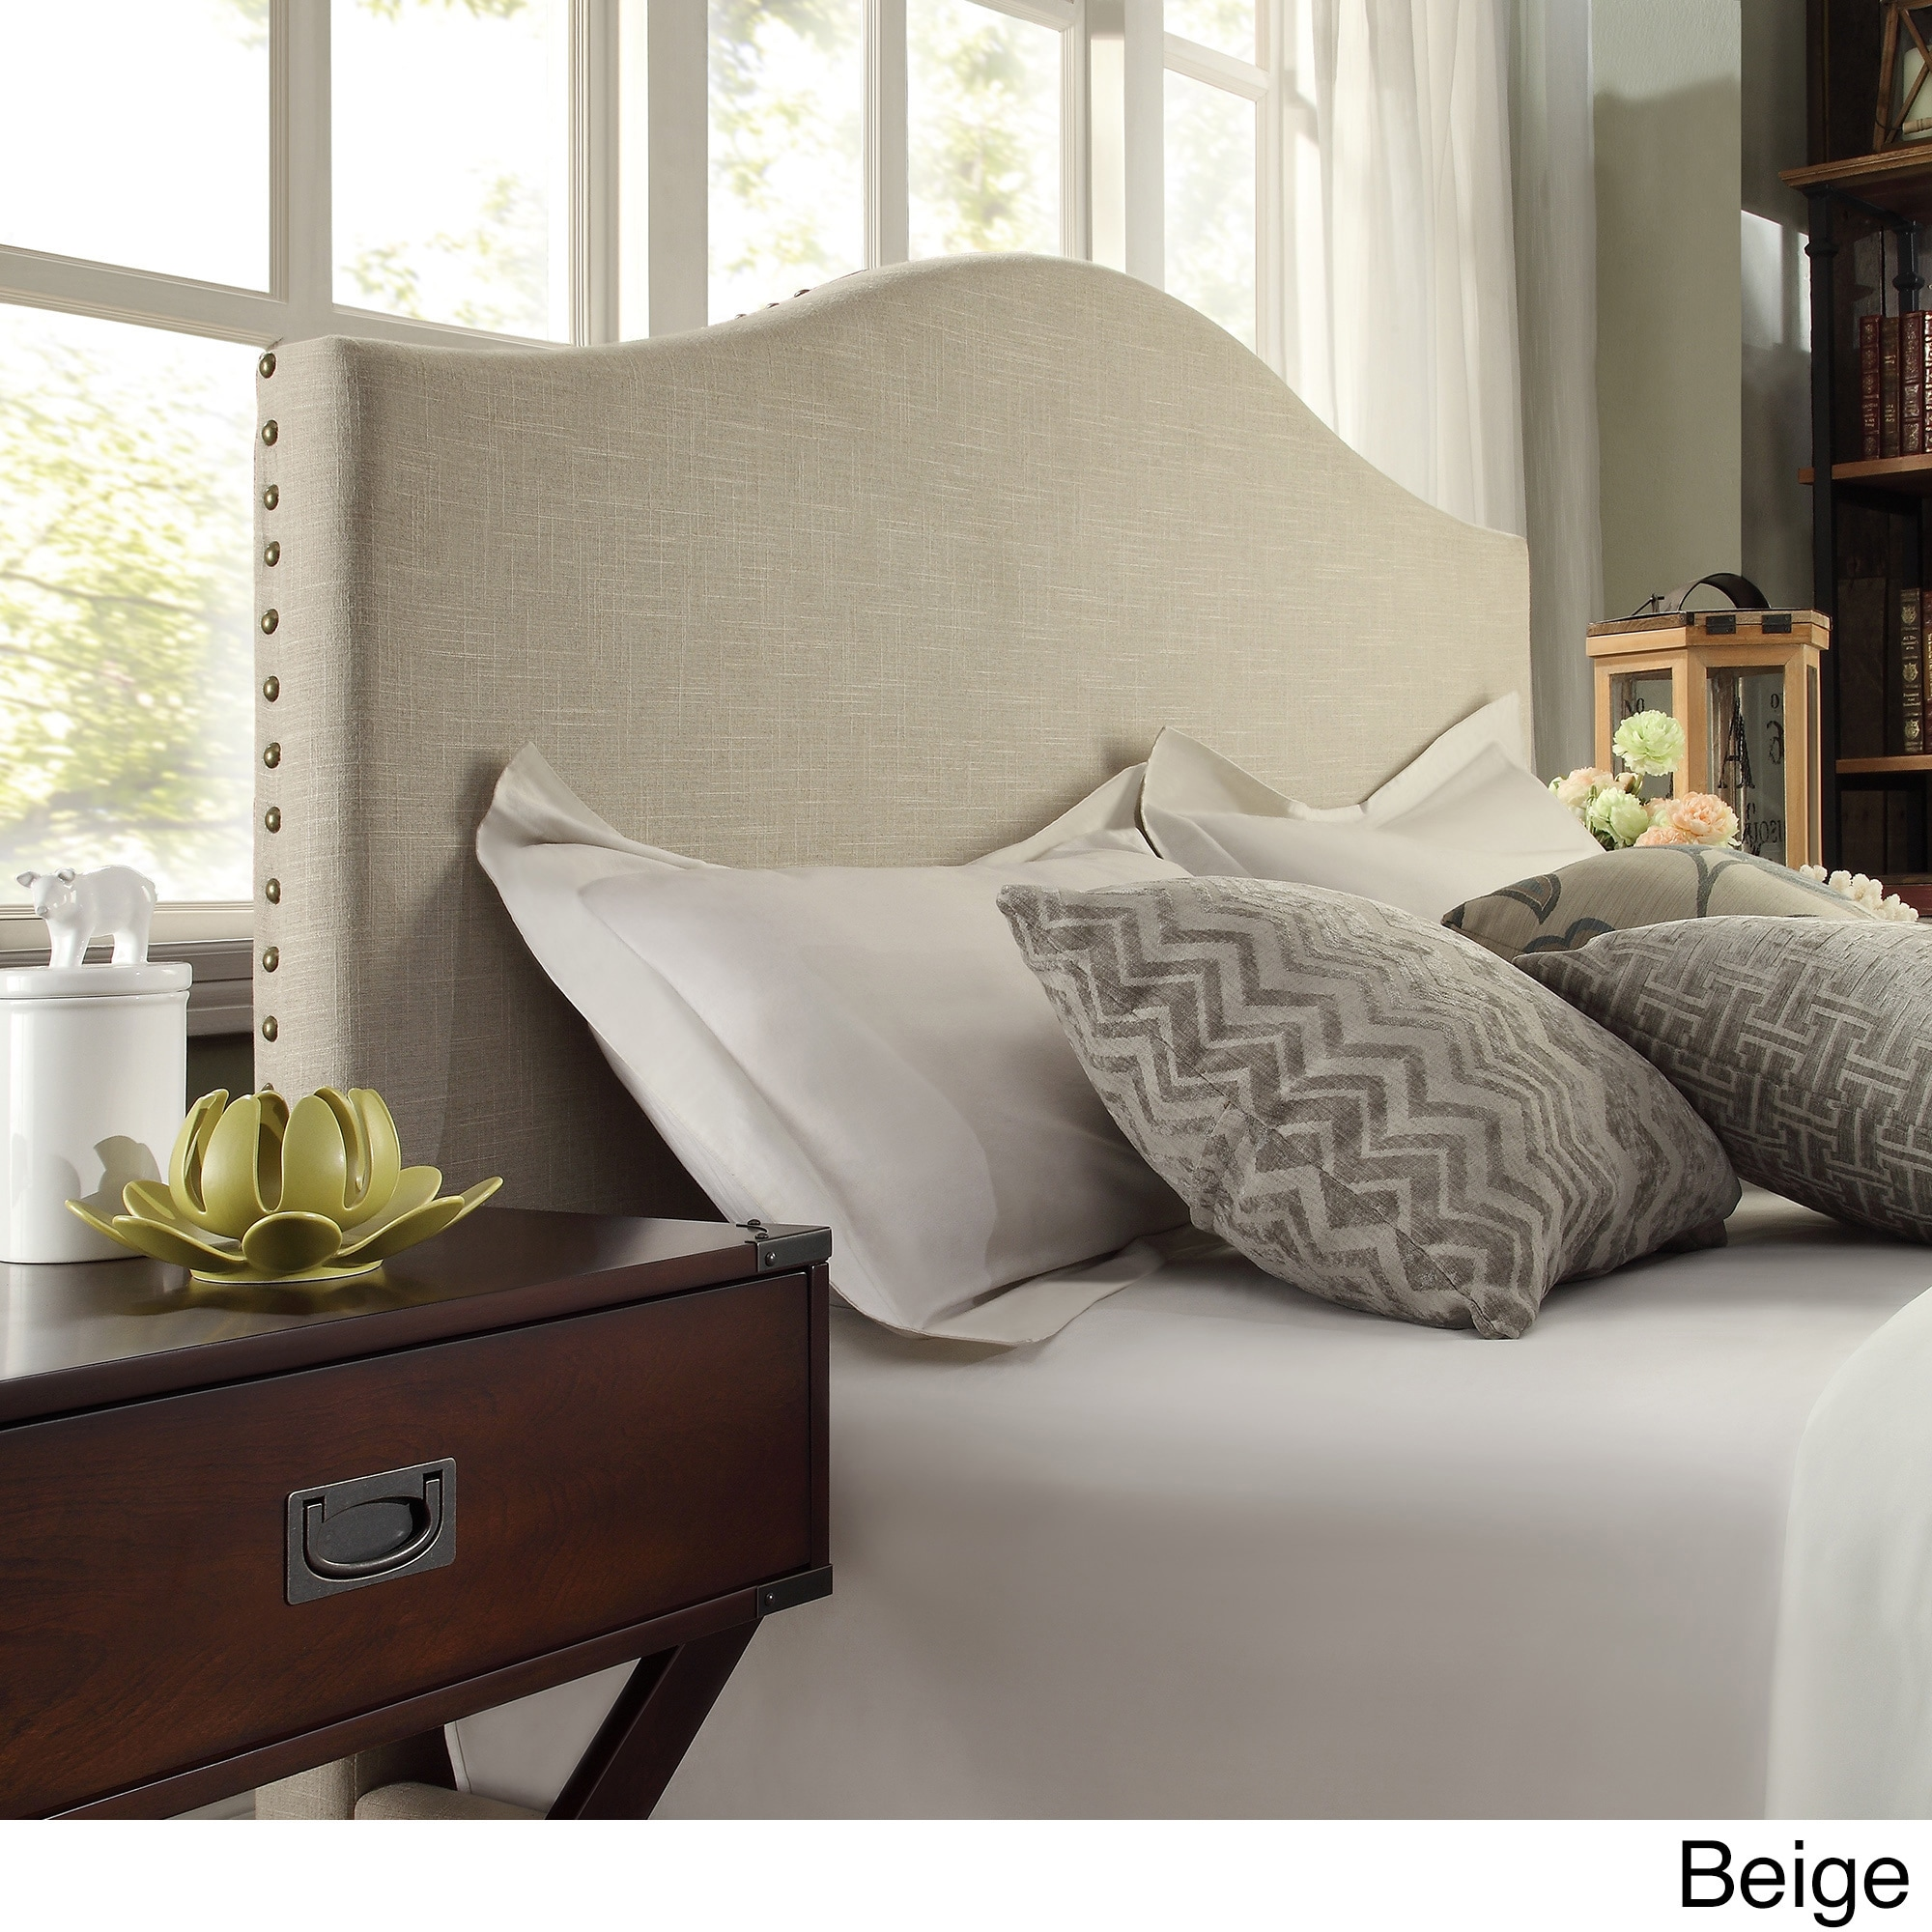 Blanchard Nailheads Camelback Upholstered Queen Size Headboard By INSPIRE Q  Bold   Free Shipping Today   Overstock   17150406